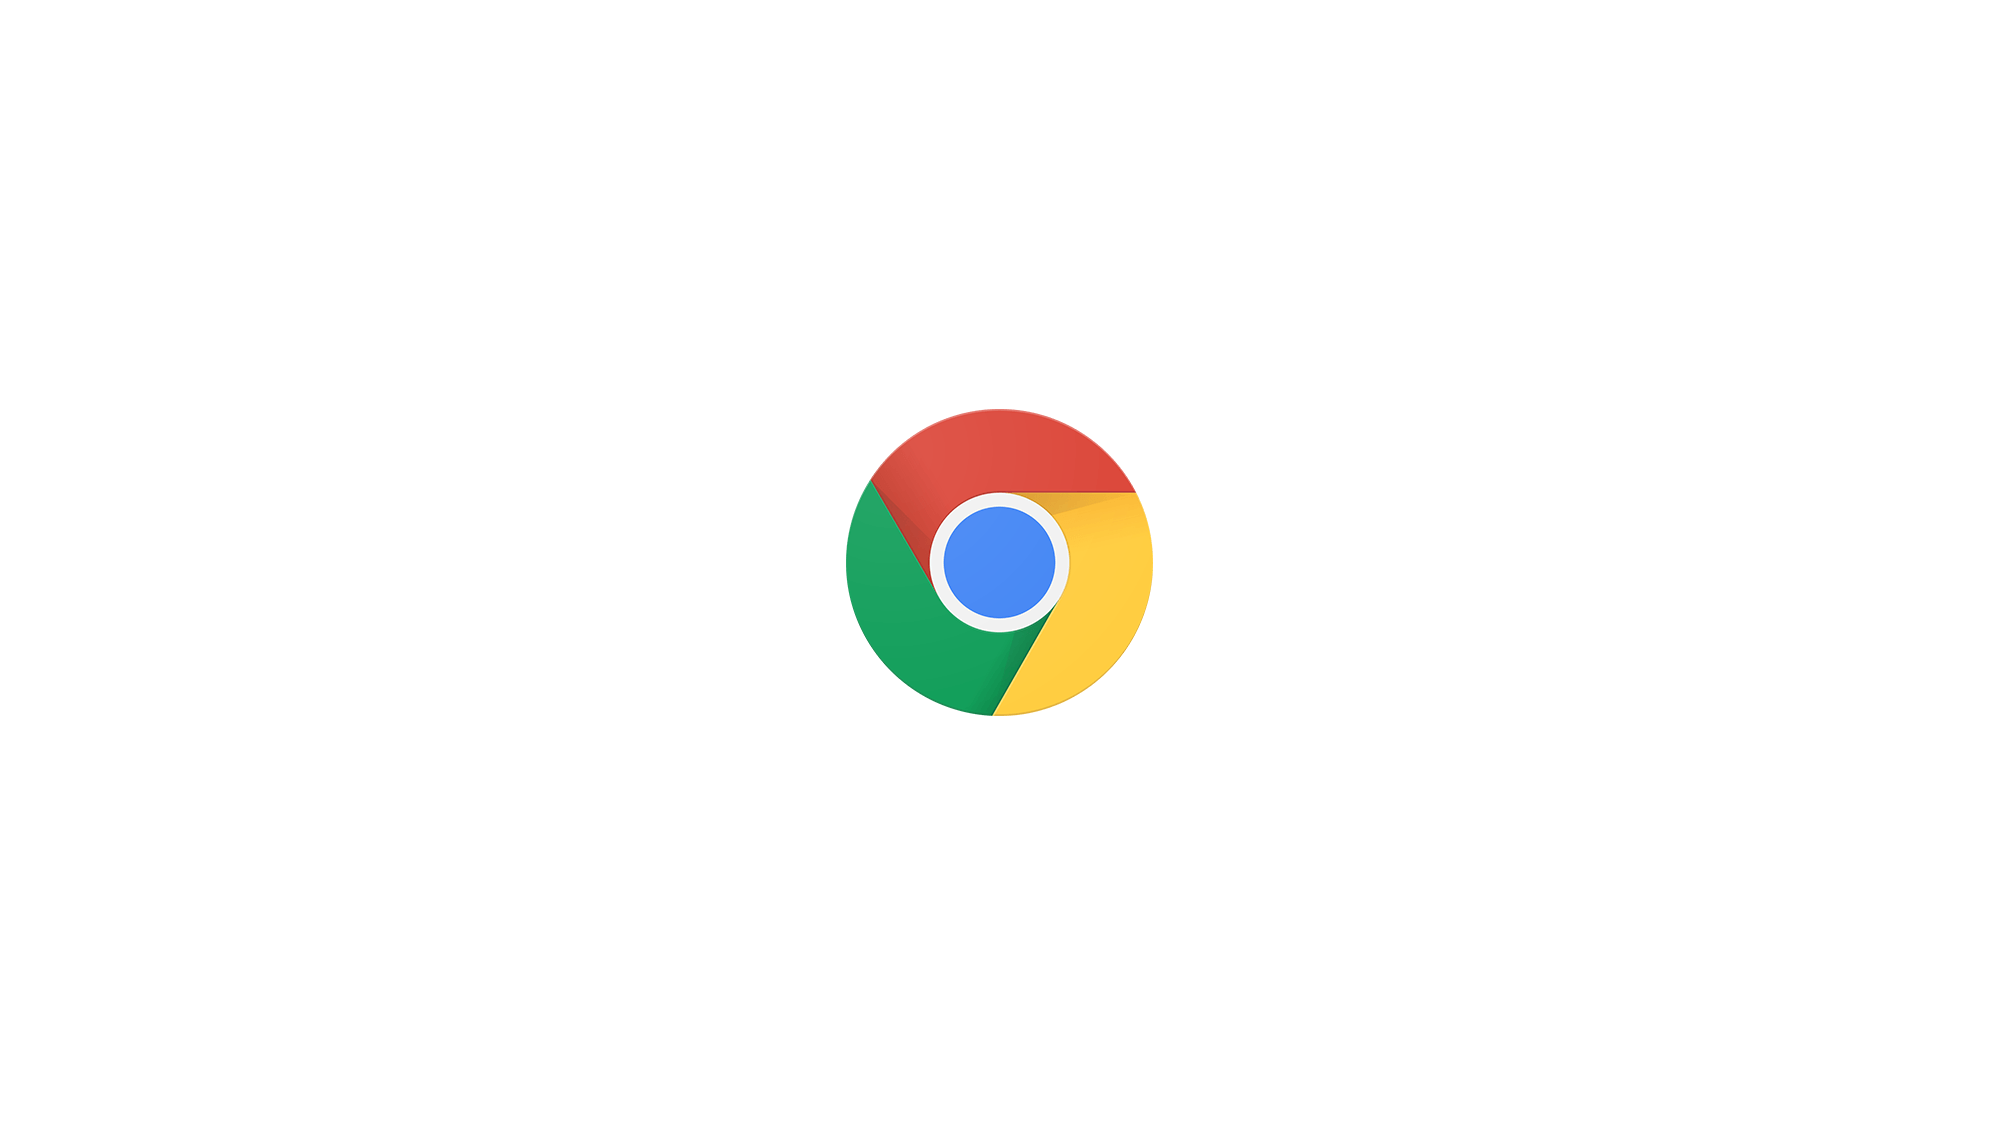 Come installare Google Chrome su Ubuntu 19.04